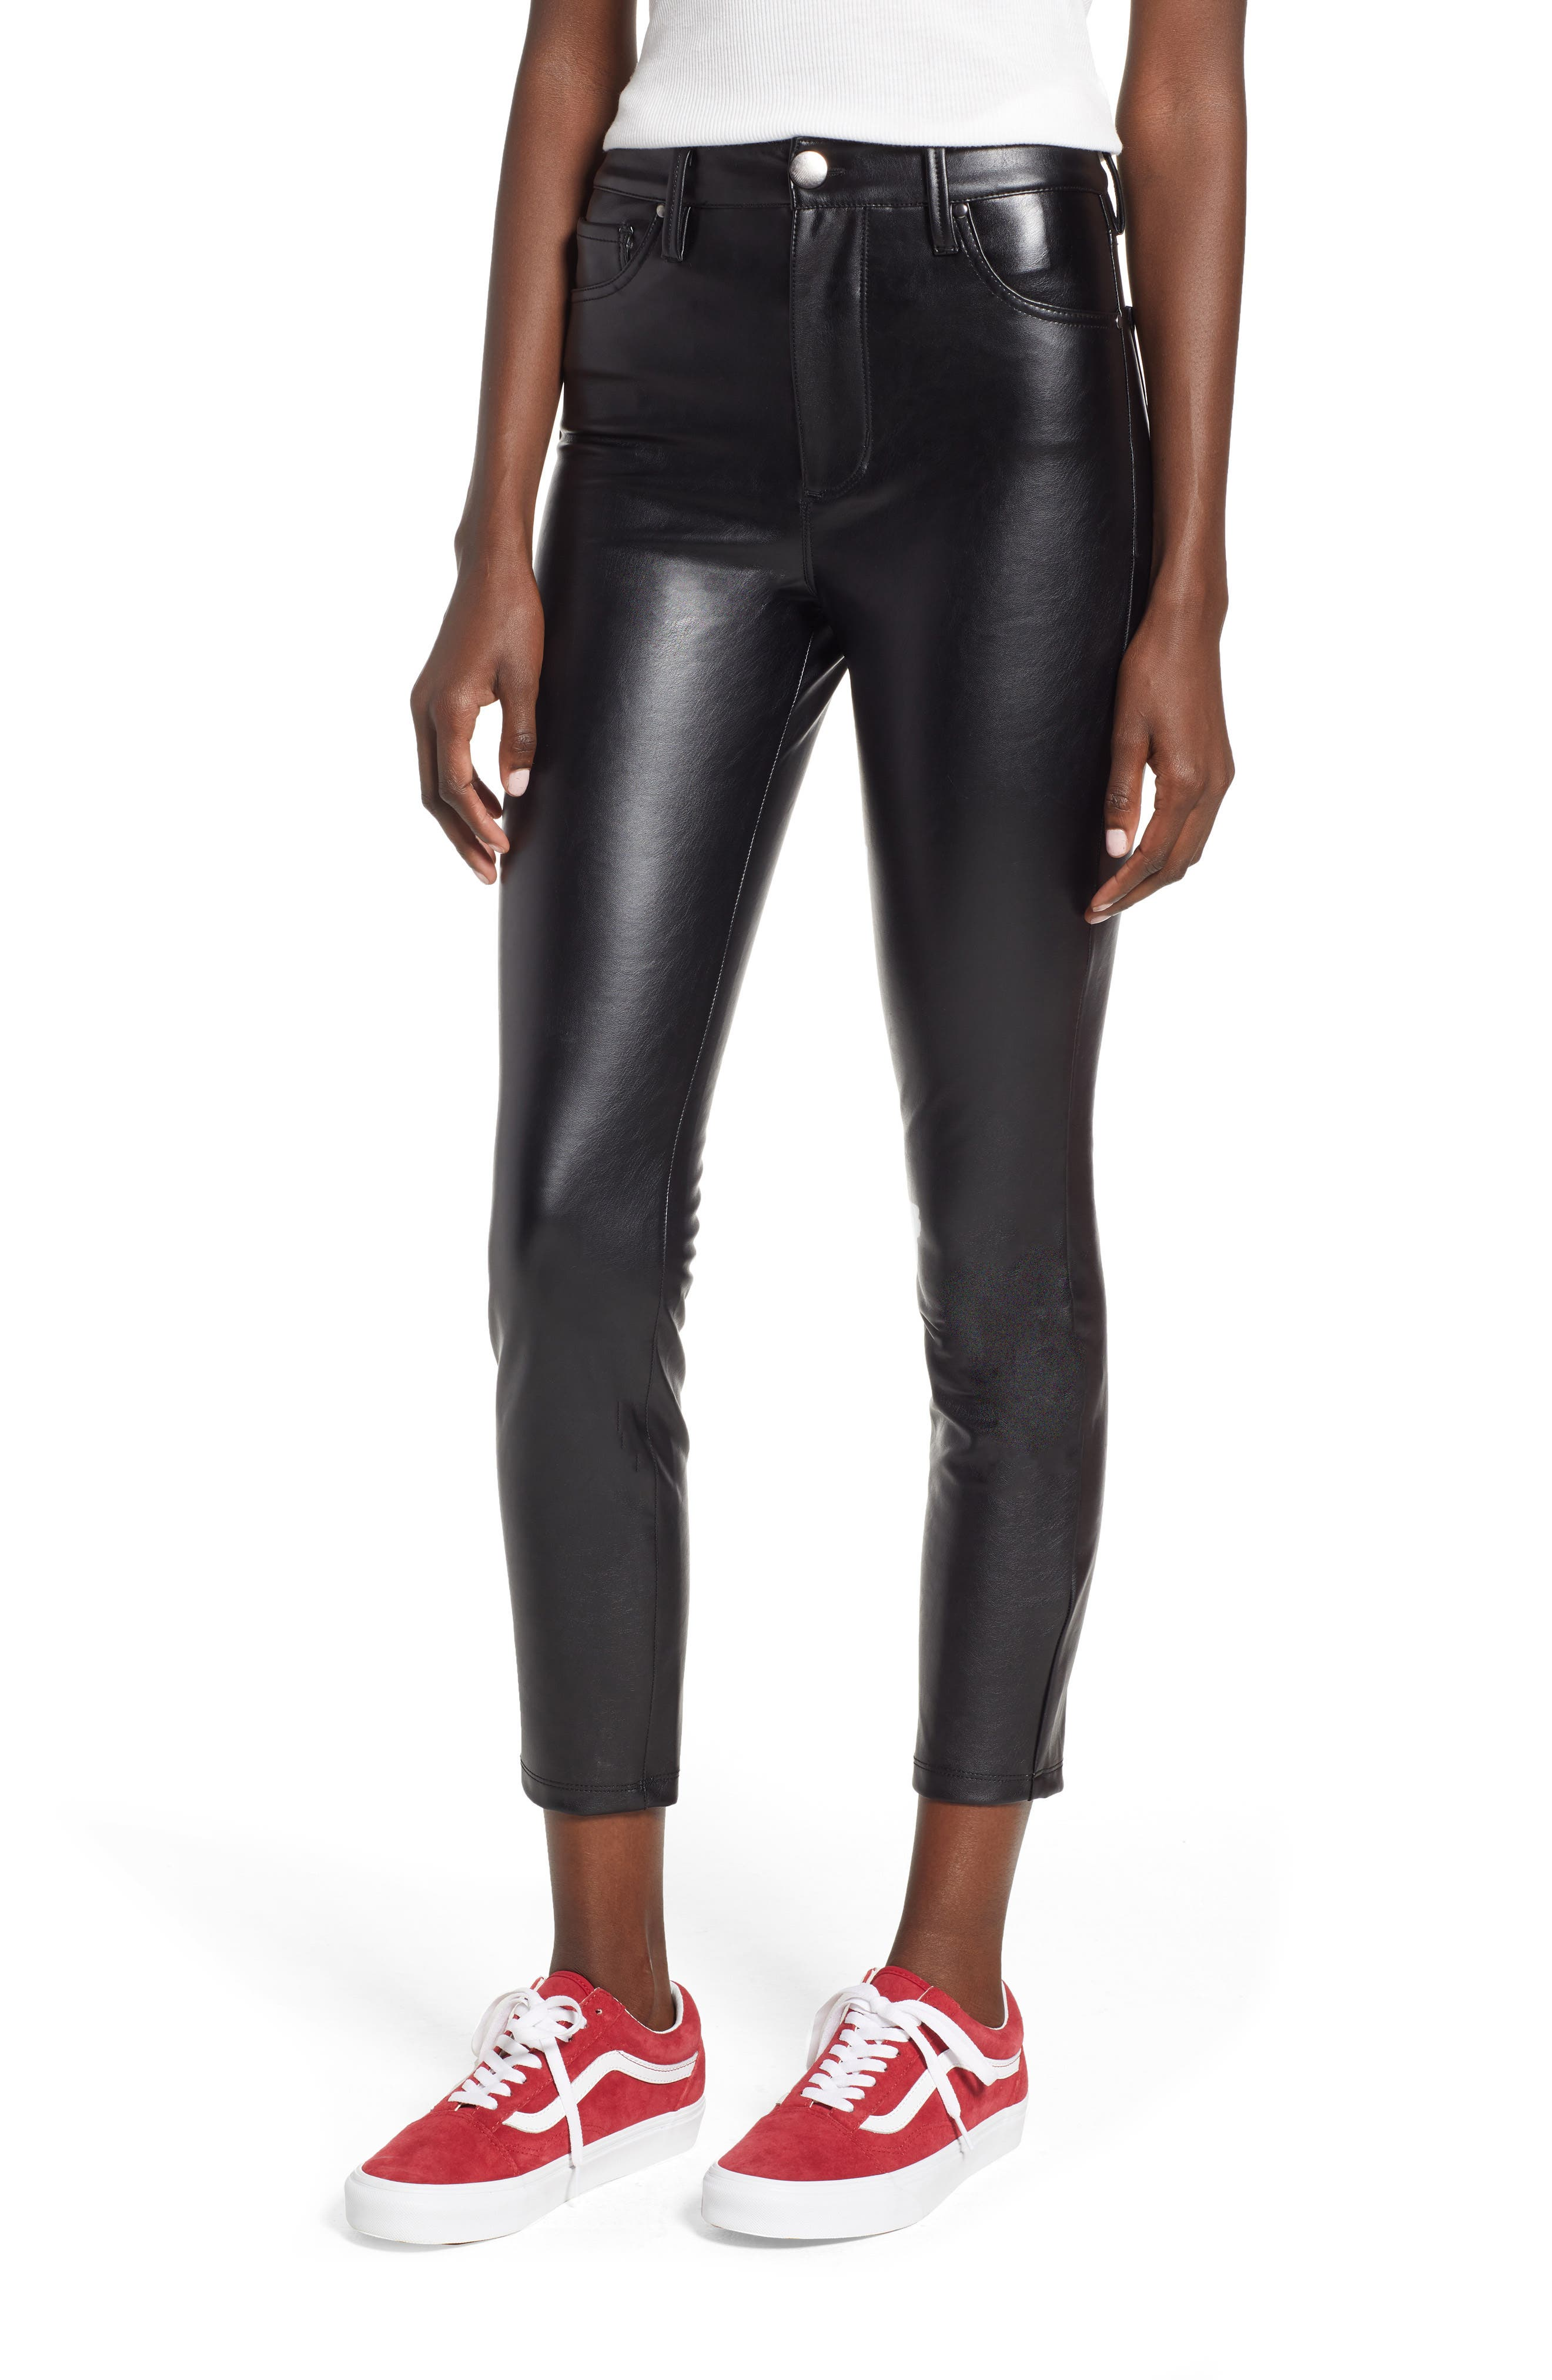 TINSEL High Waist Faux Leather Skinny Pants, Main, color, 001